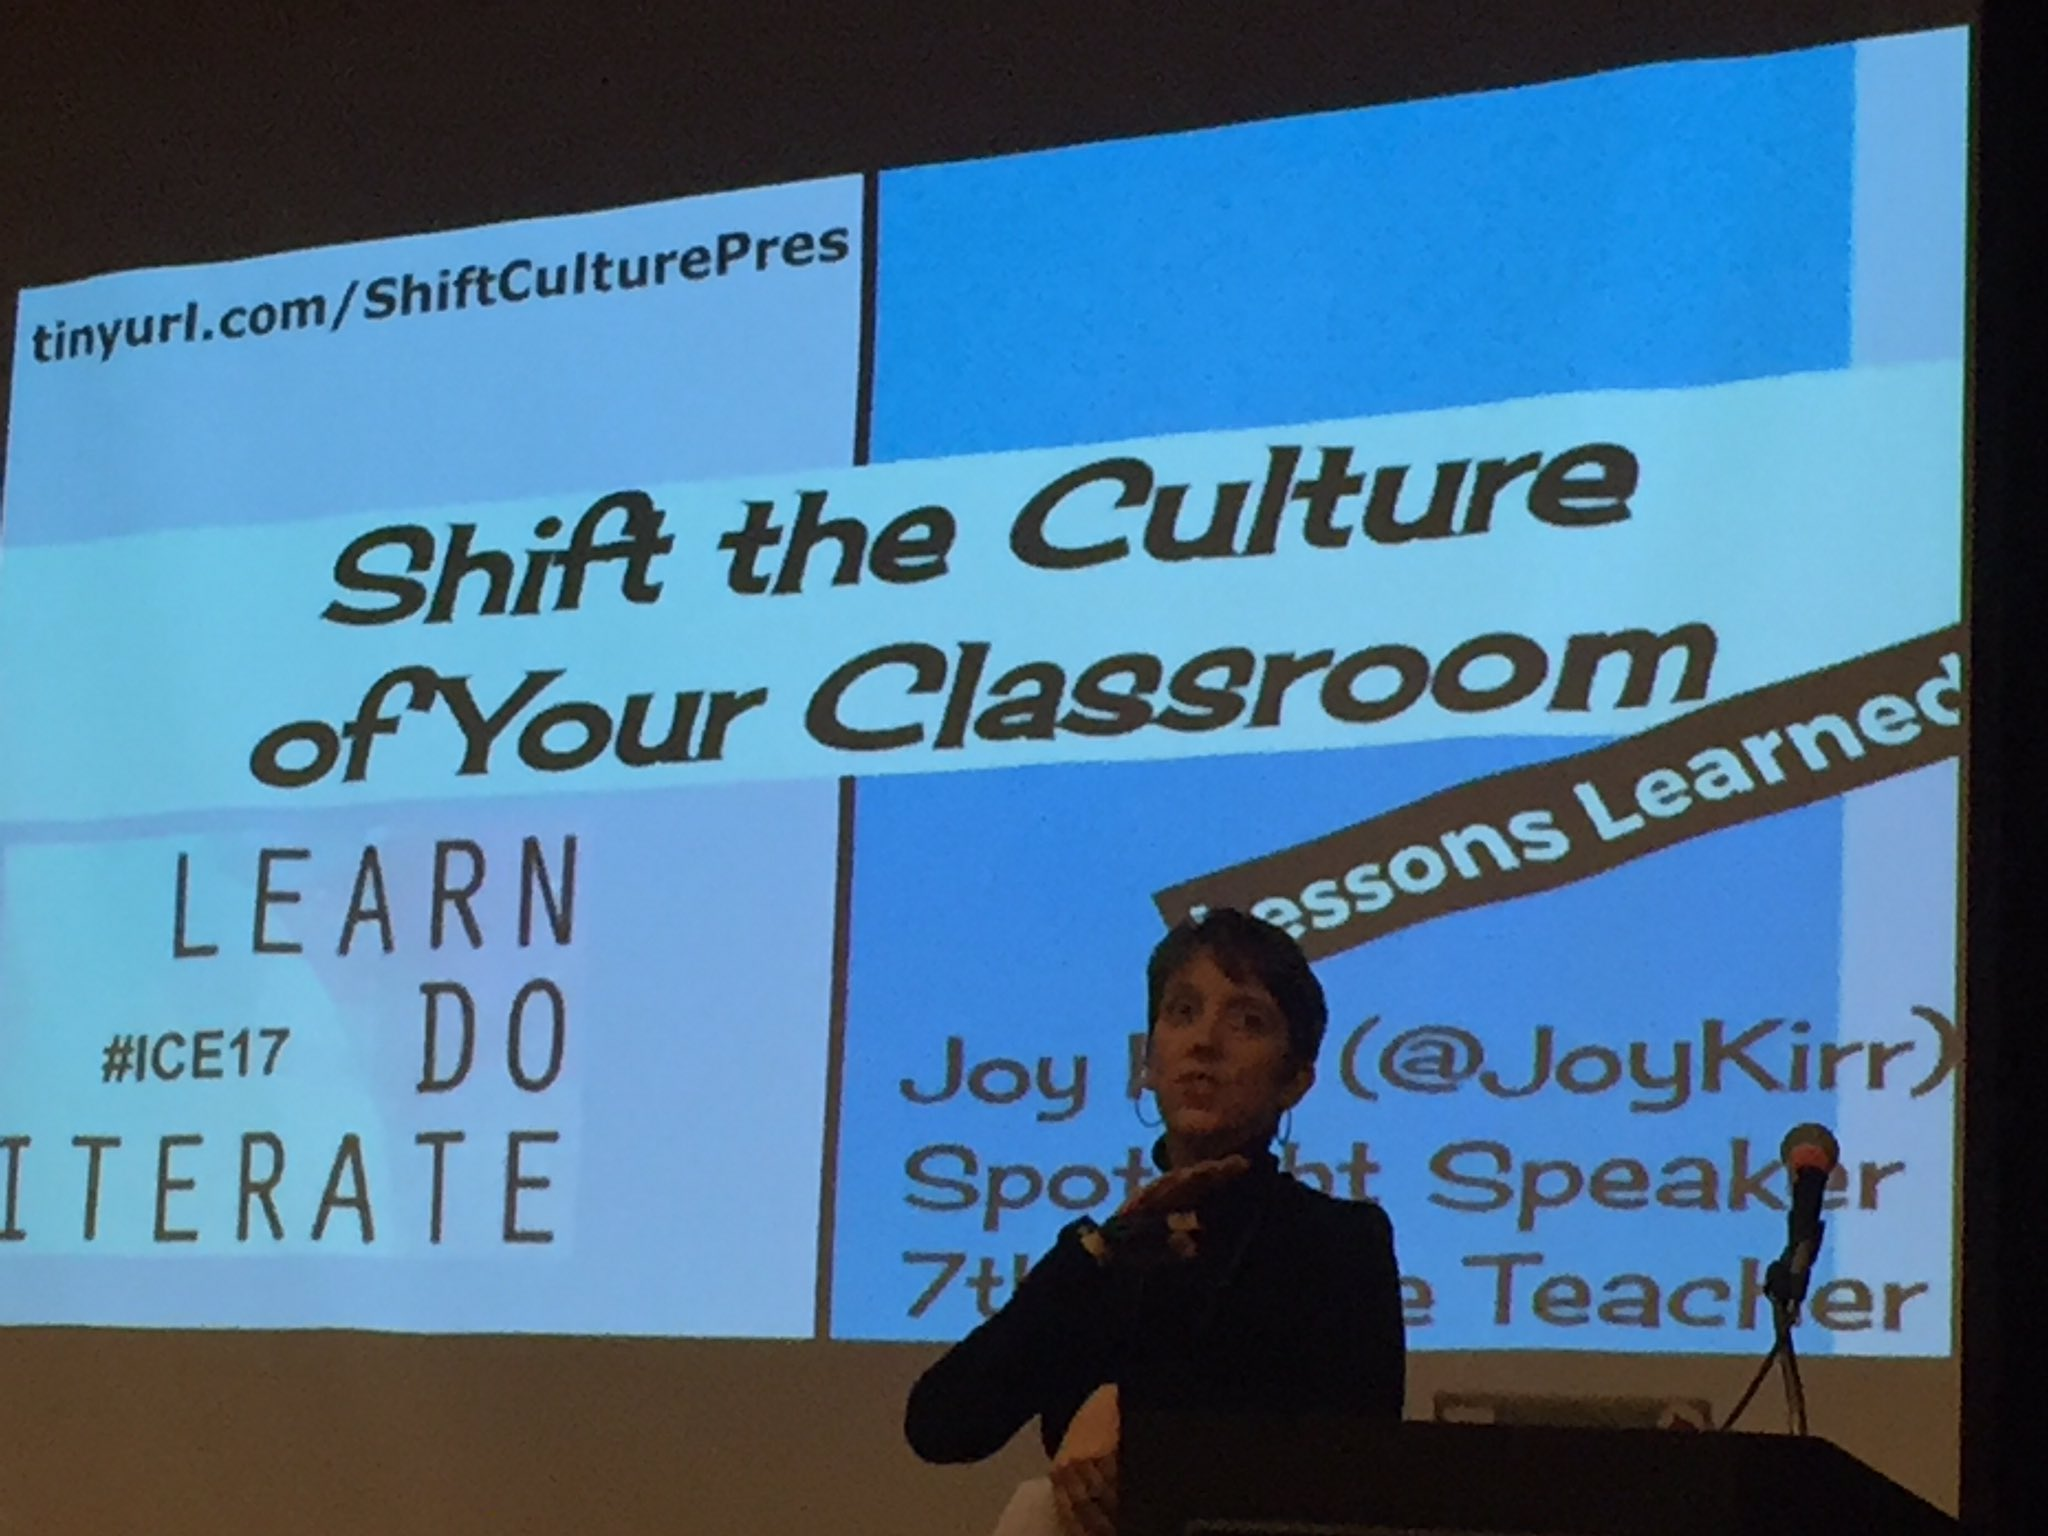 Just kicking off her Shift the Culture of Your Classroom with @JoyKirr at #ICE17 remembering how @ewanmcintosh changed our practice! https://t.co/tiXUXSuwGt